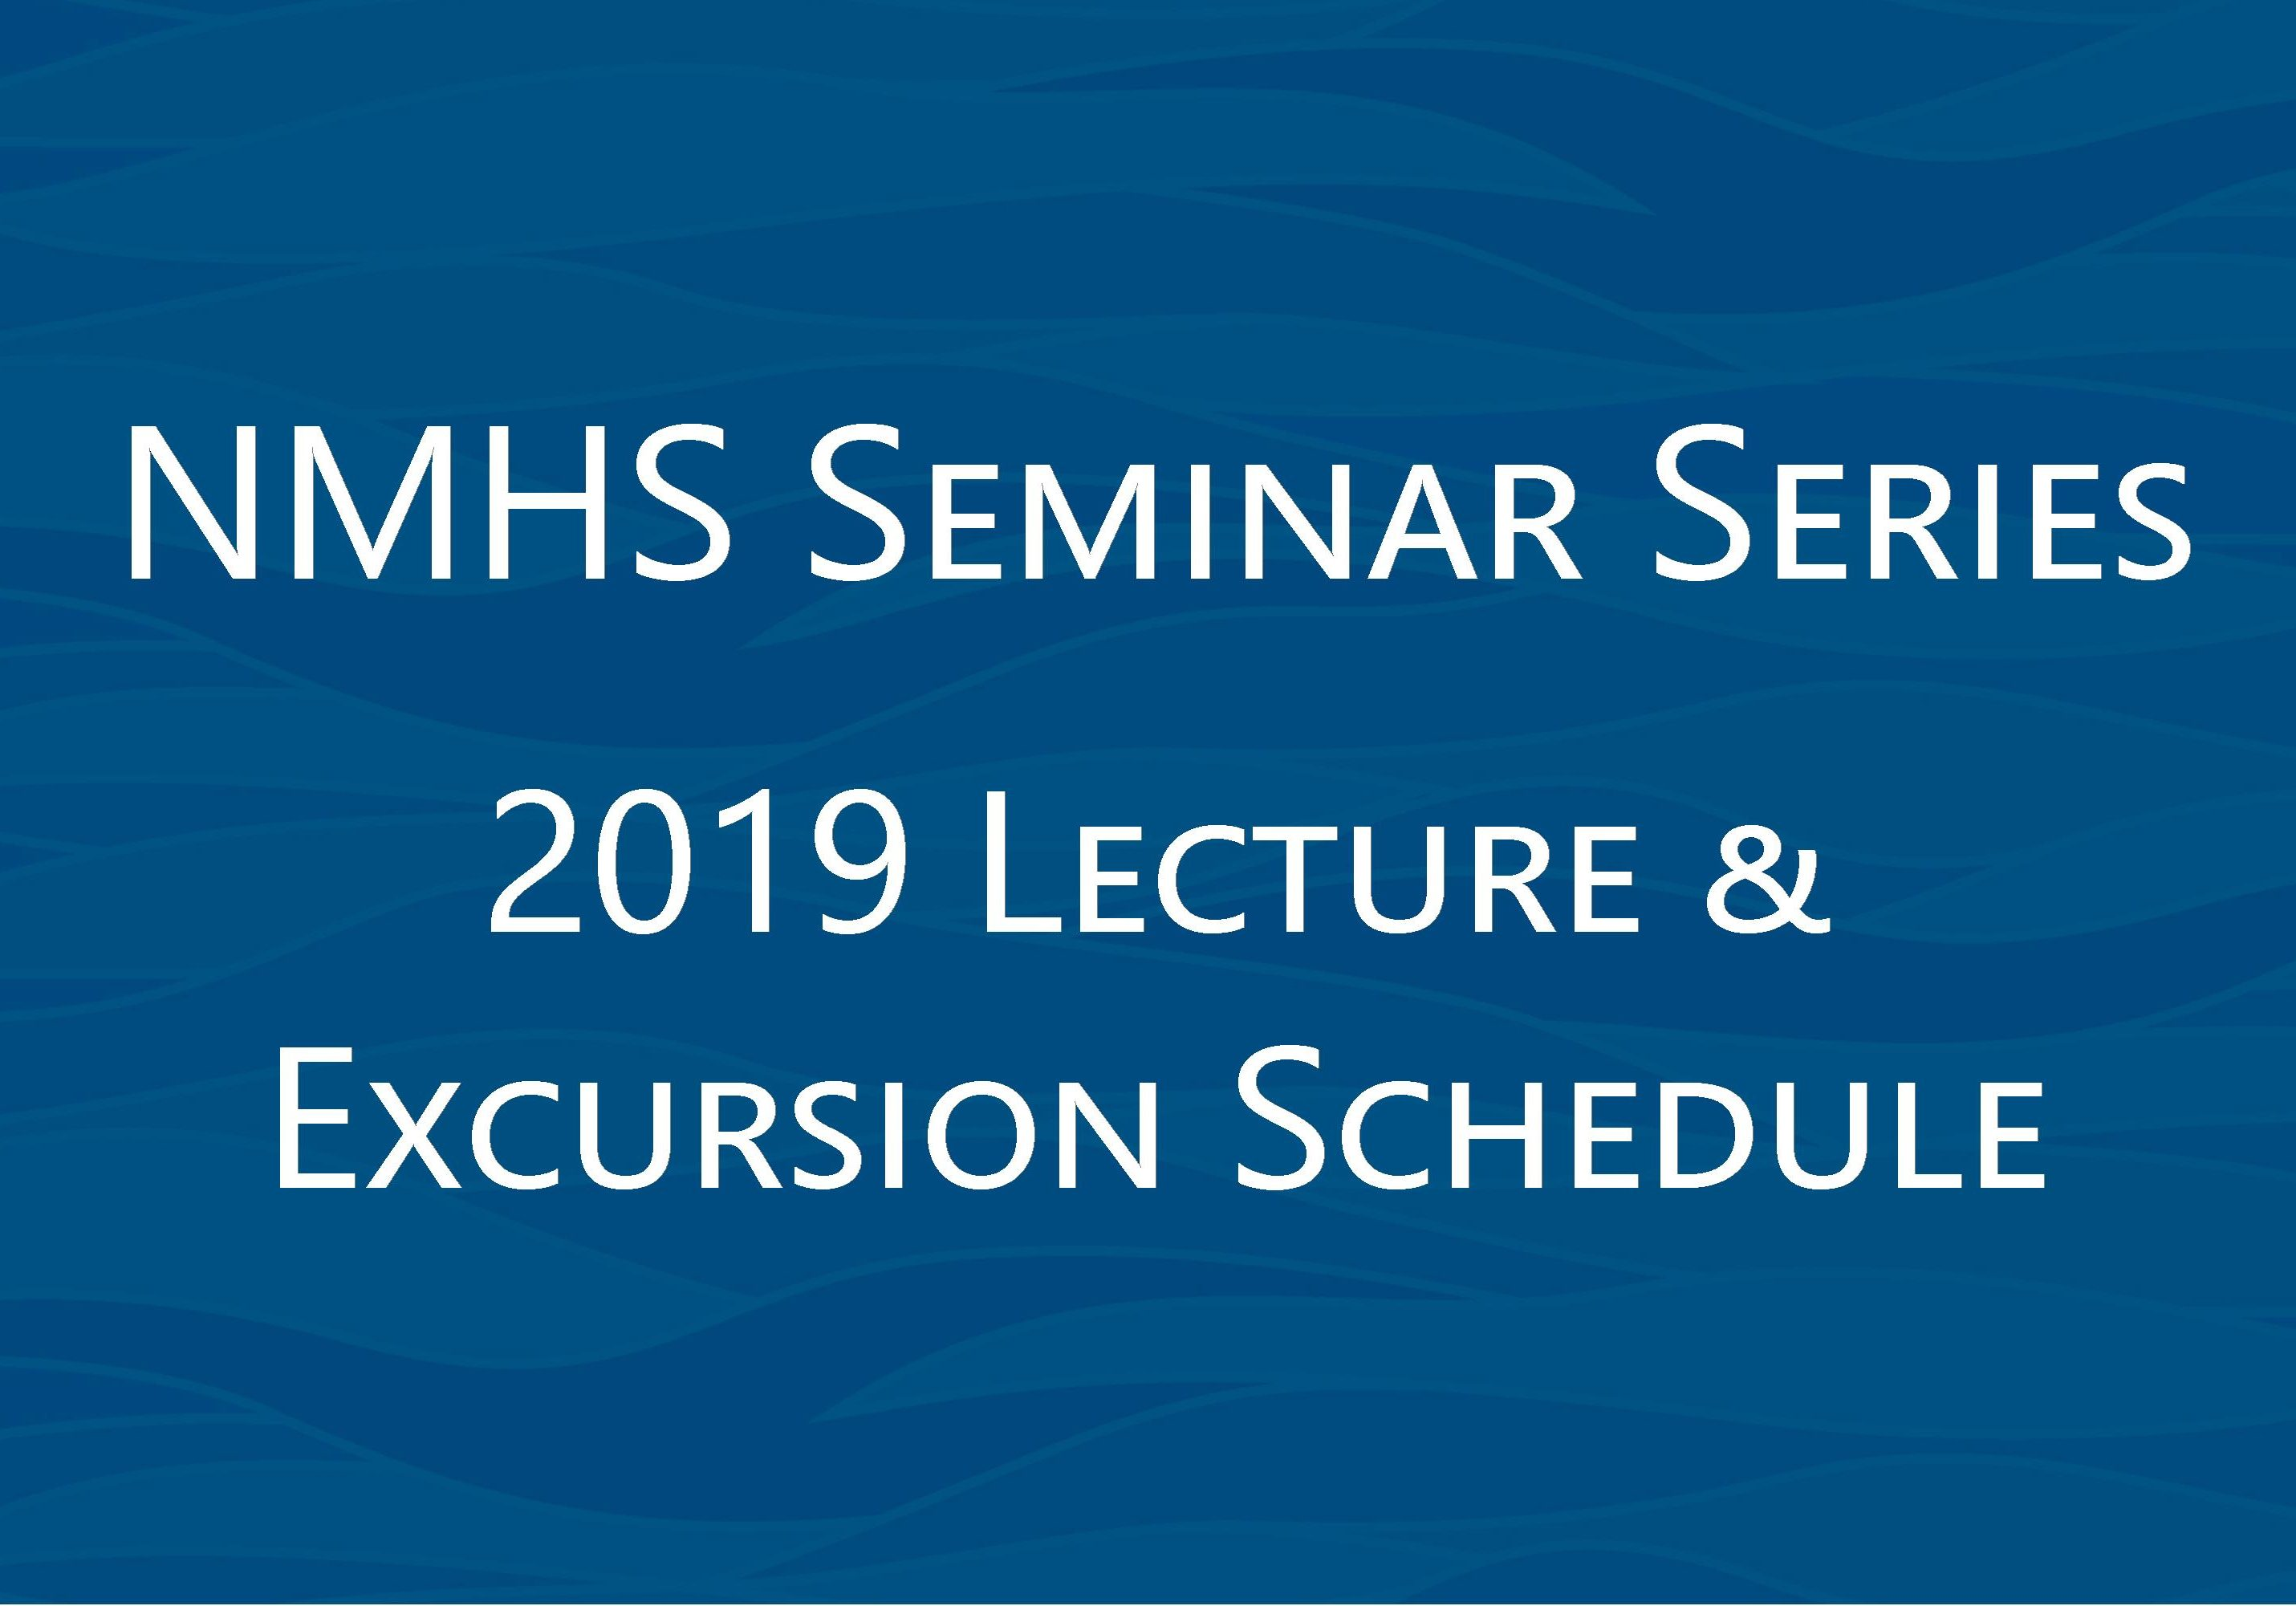 2019 Seminar Series Schedule - National Maritime Historical